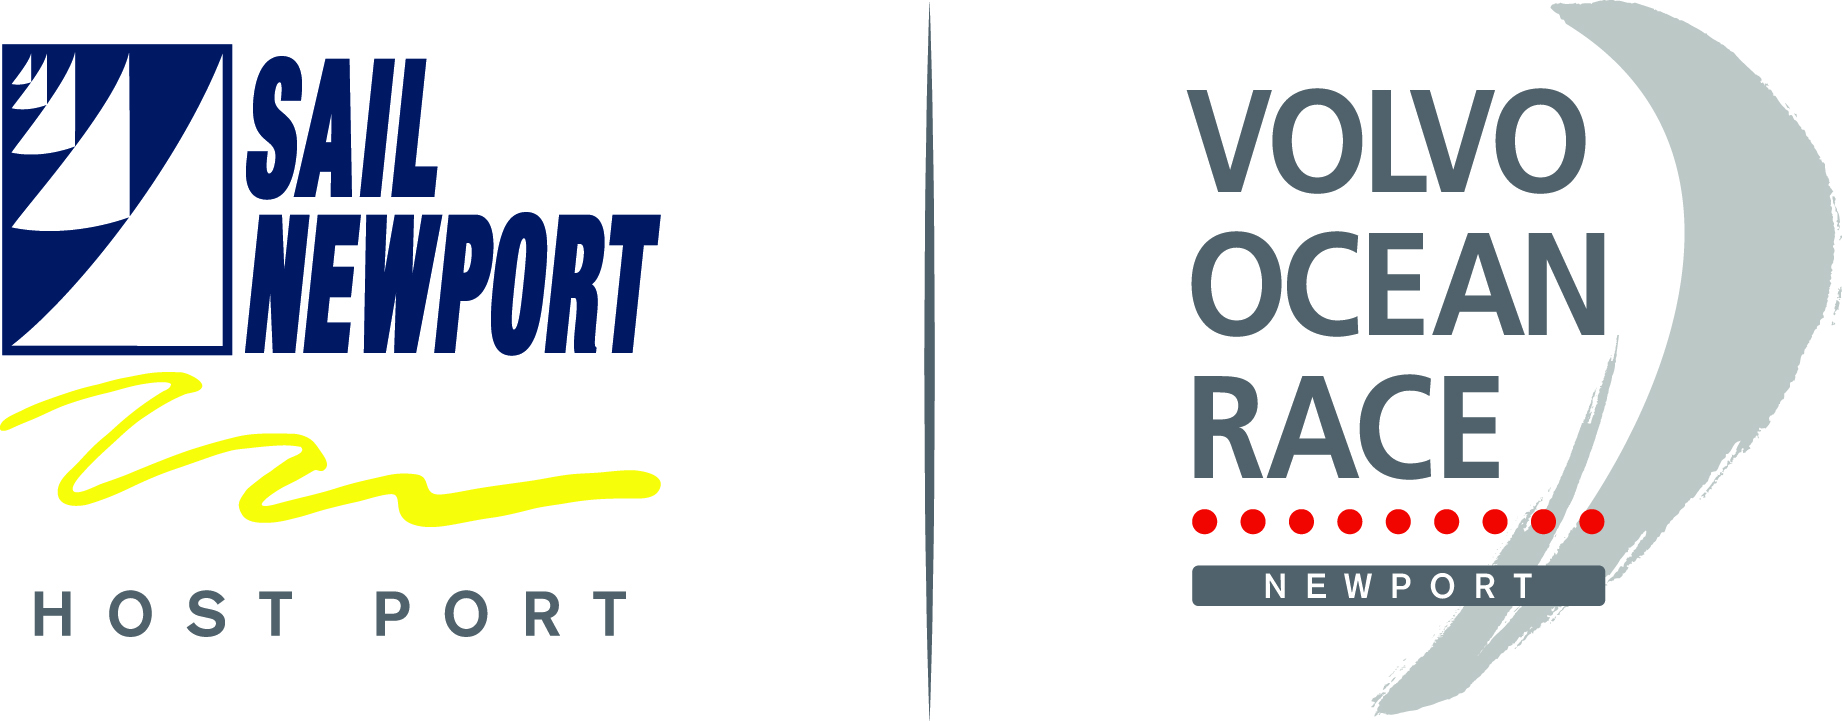 Newport Shipyard is proud to be a  COMMUNITY PARTNER  of the 2018 Volvo Ocean Race Newport stopover.